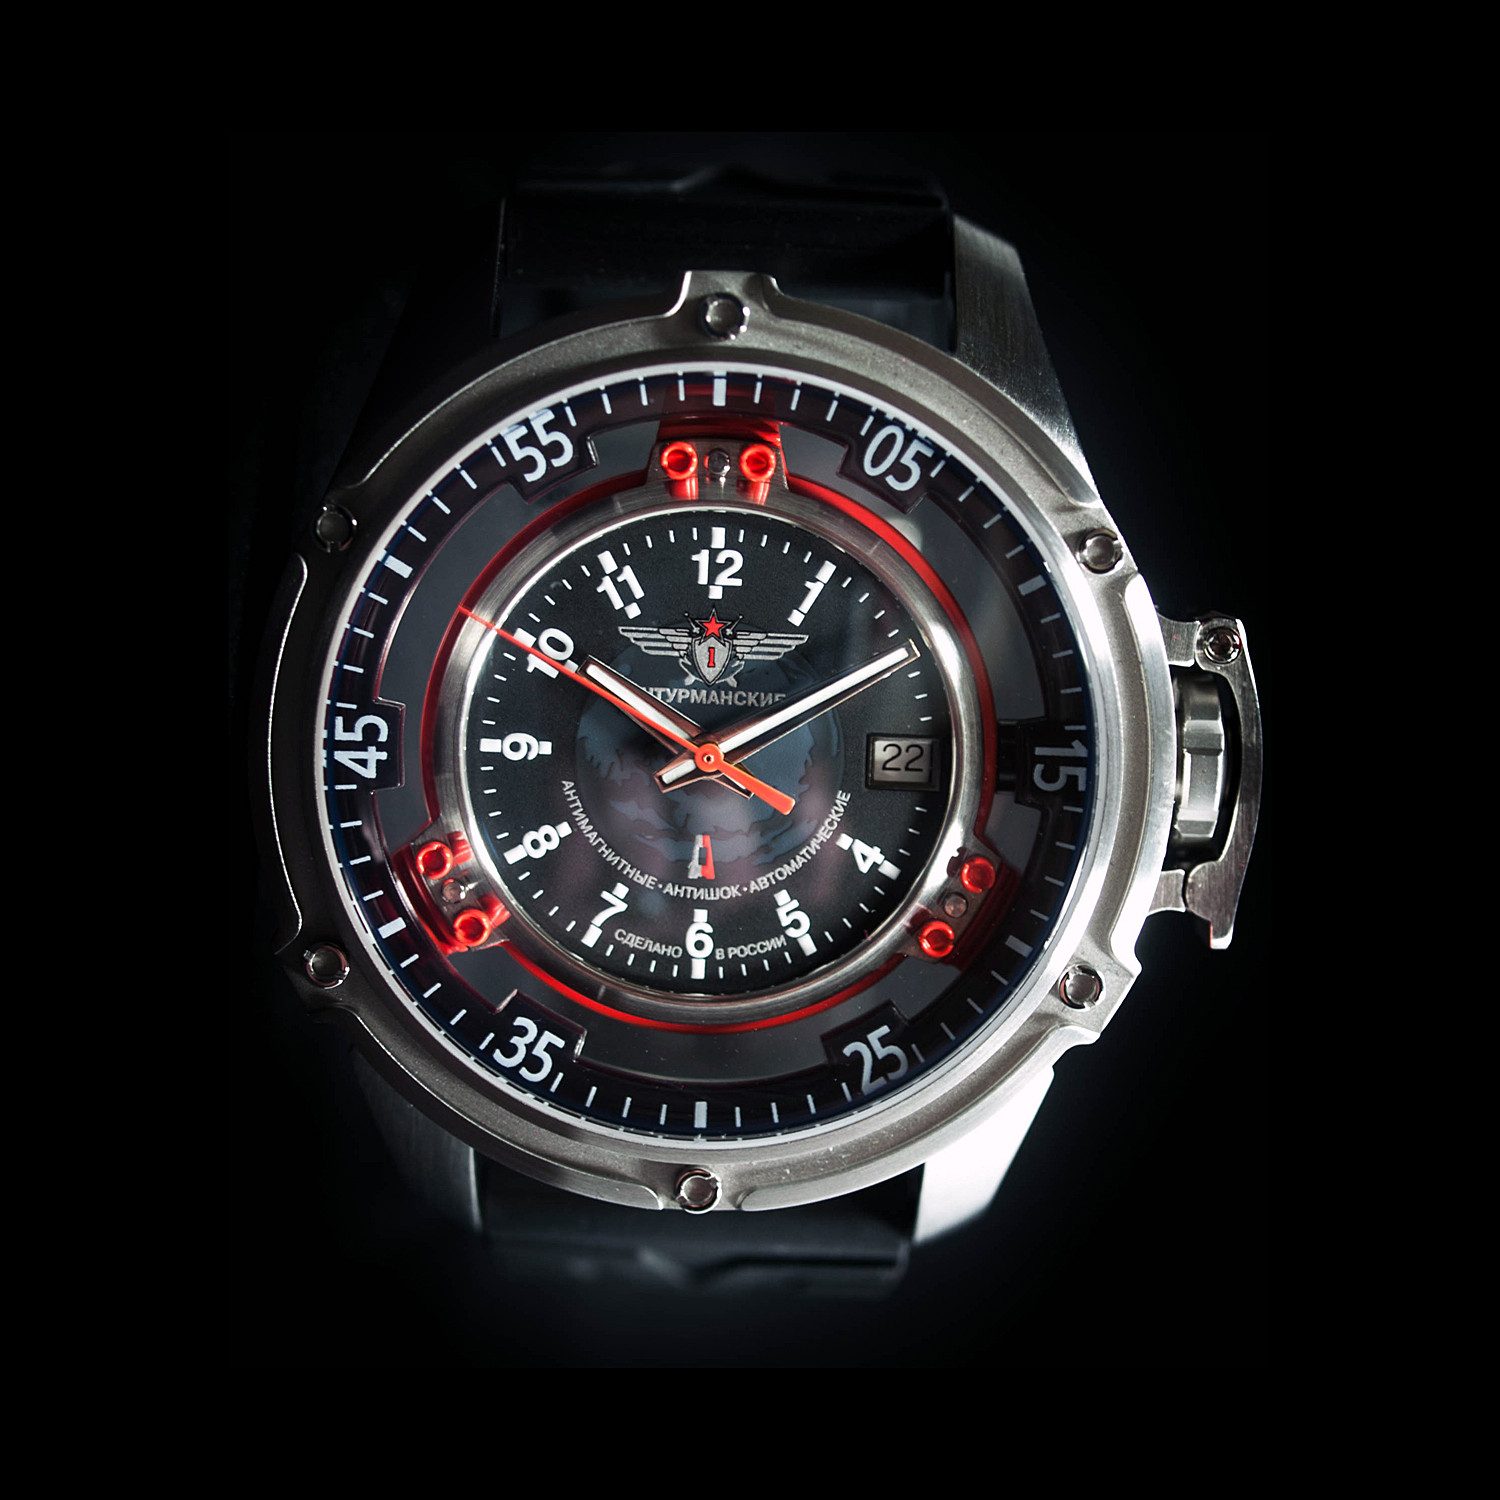 Mars Swiss Automatic    Russian Space Agency    Black + Red ... 9fcb3ae1df4